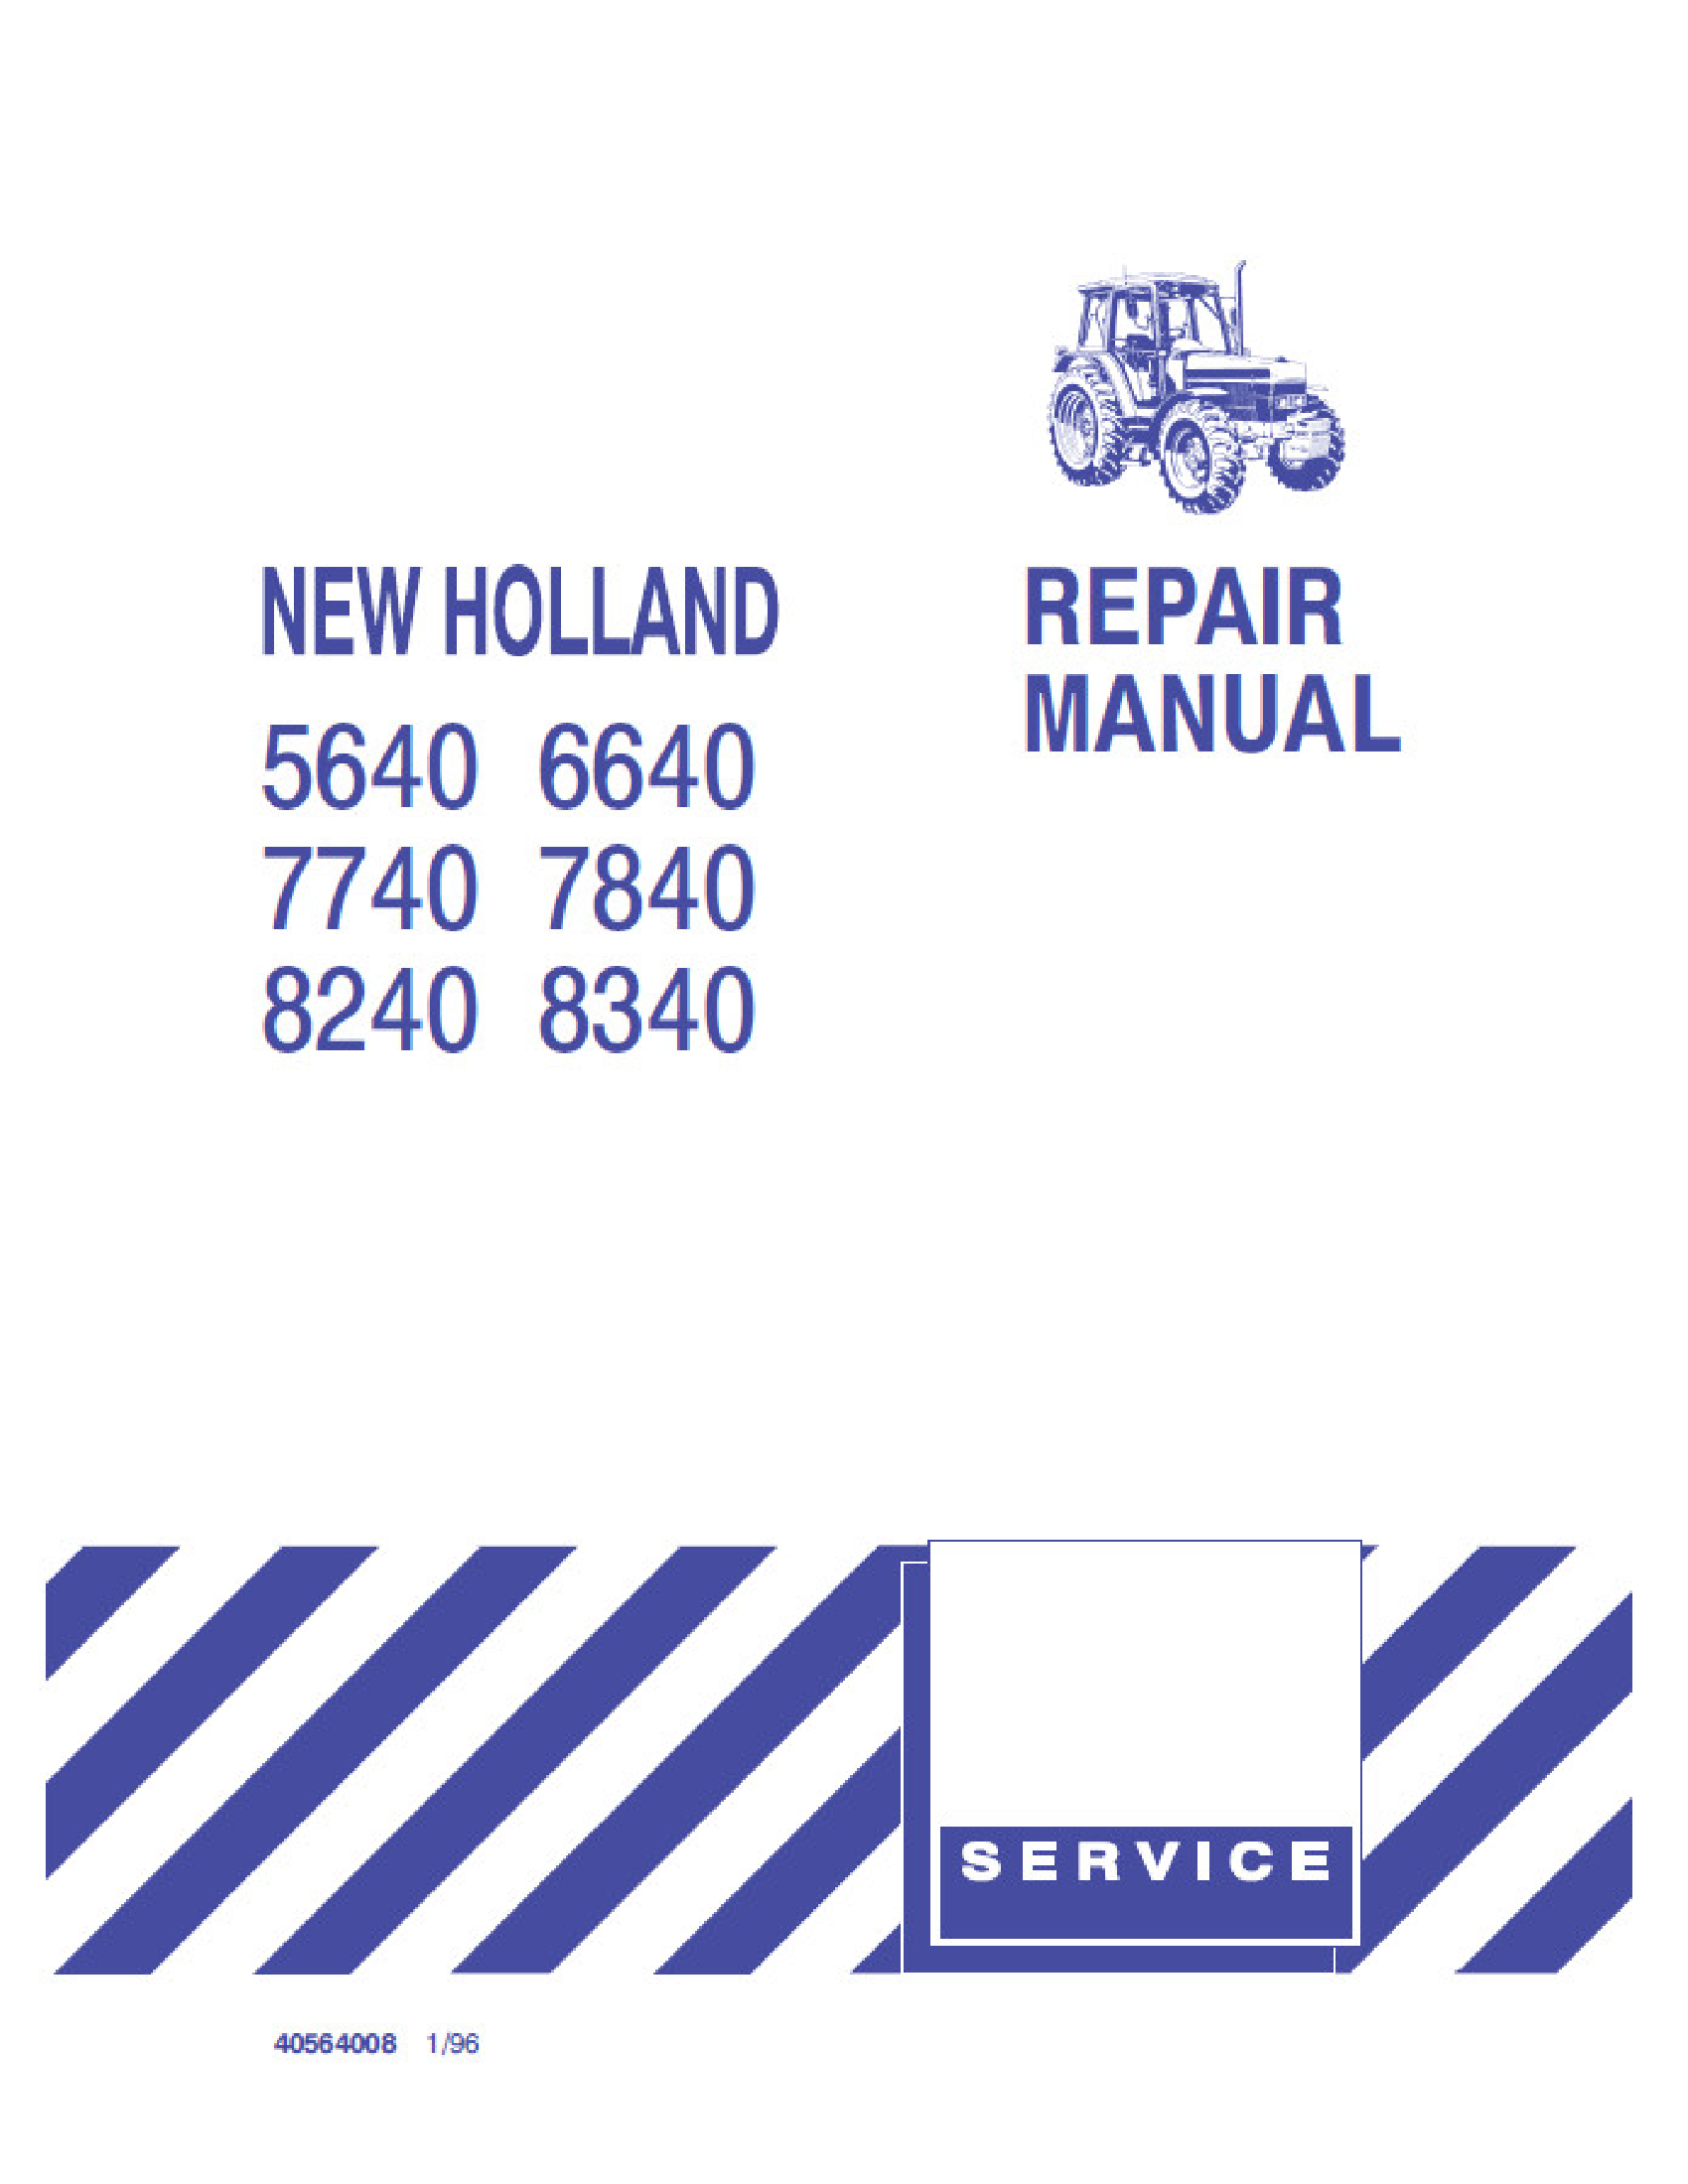 New Holland 7740 Tractor Manual New Holland 7740 Tractor Owners Manual New Holland 7740 Tractor Service Manual New Holland 7740 Tractor